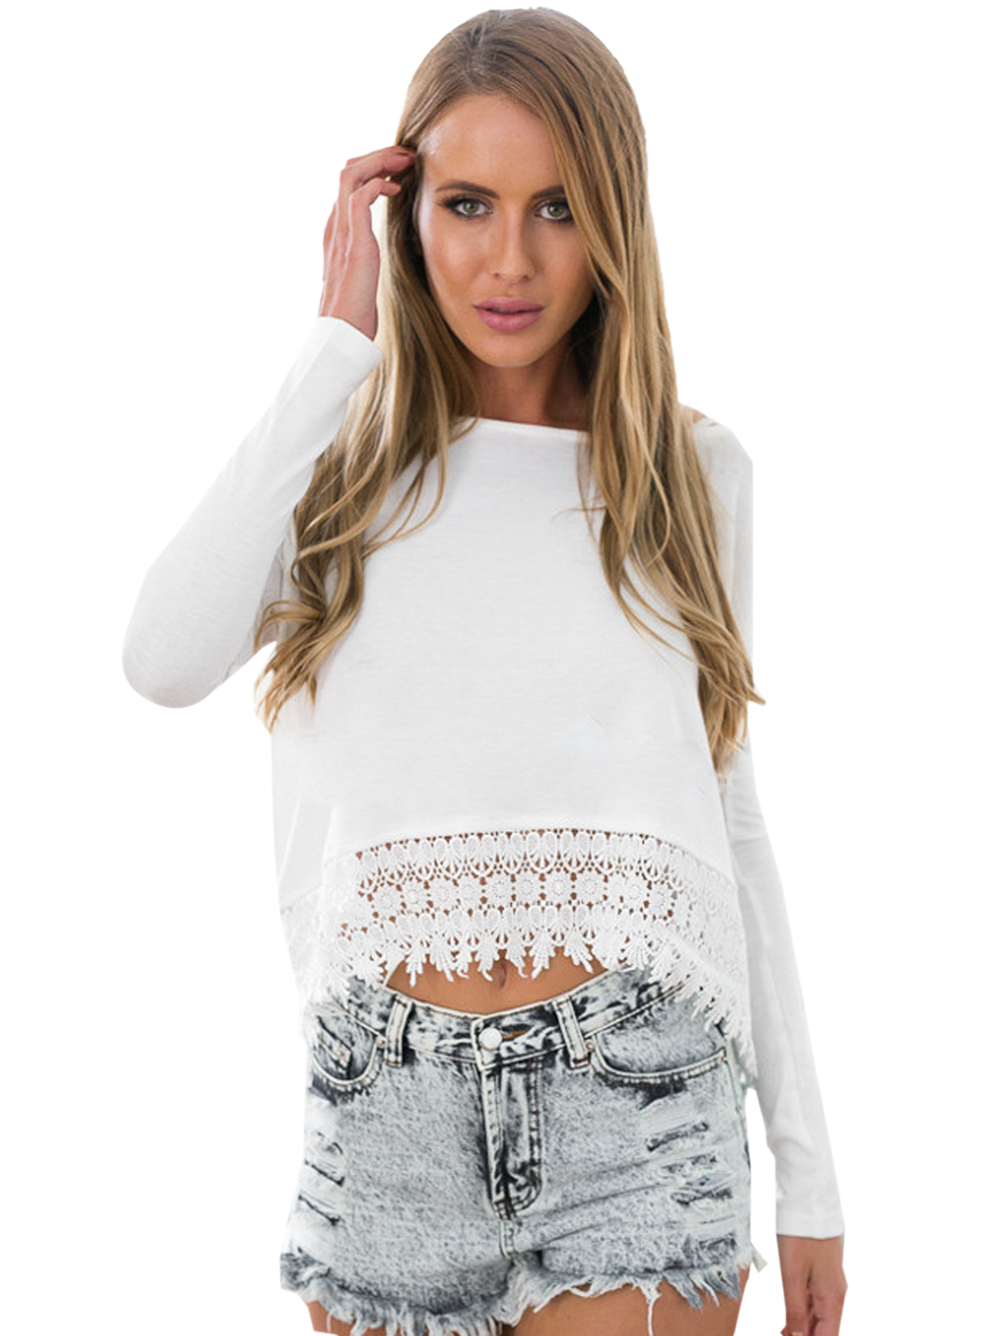 Aliexpress.com  Buy O Neck Lace Top Blouse Casual Fashion White Loose Crop Tops Full sleeve New ...